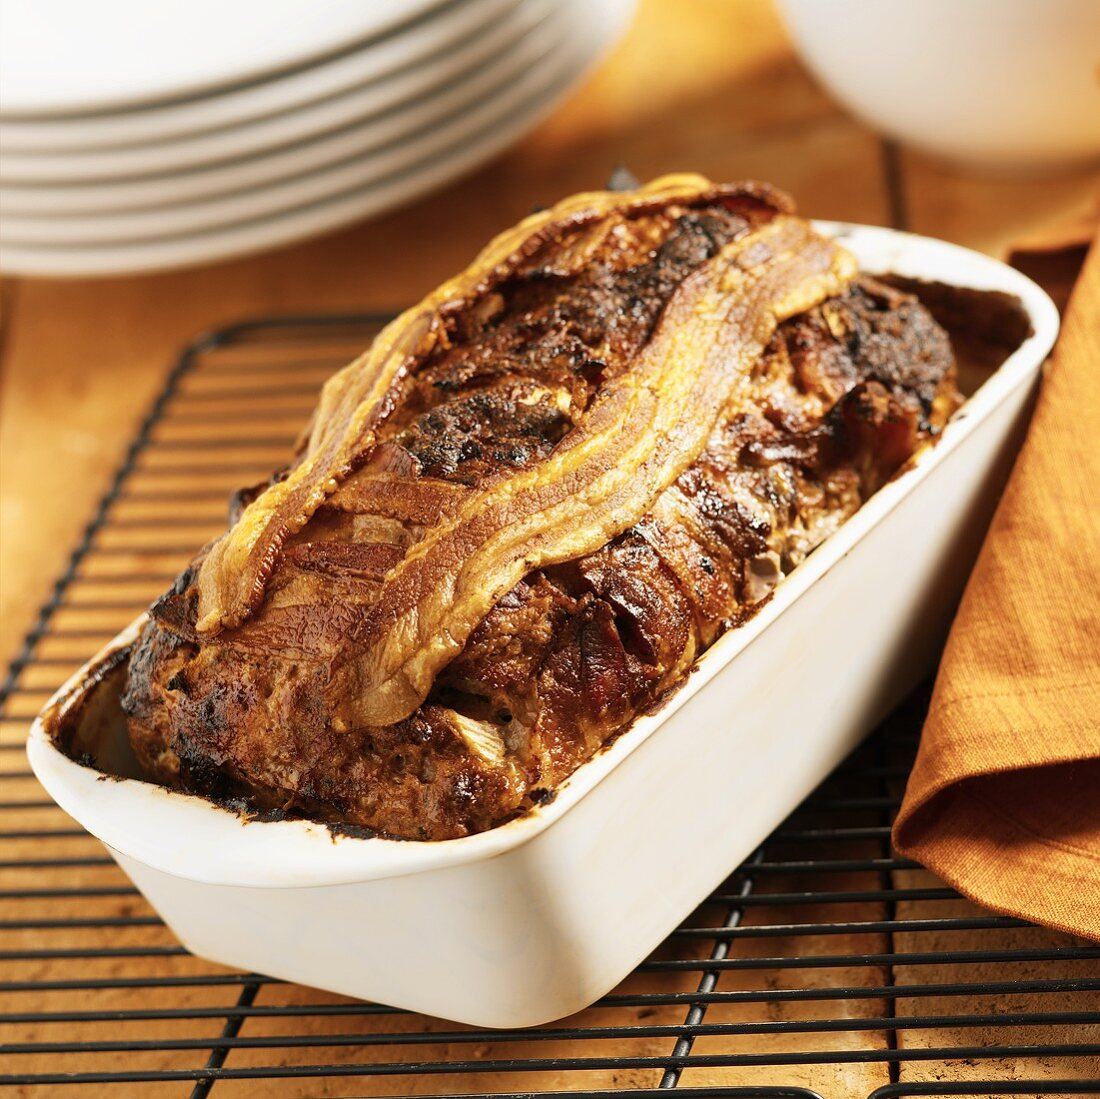 Meatloaf Topped with Bacon in a Ceramic Loaf Pan